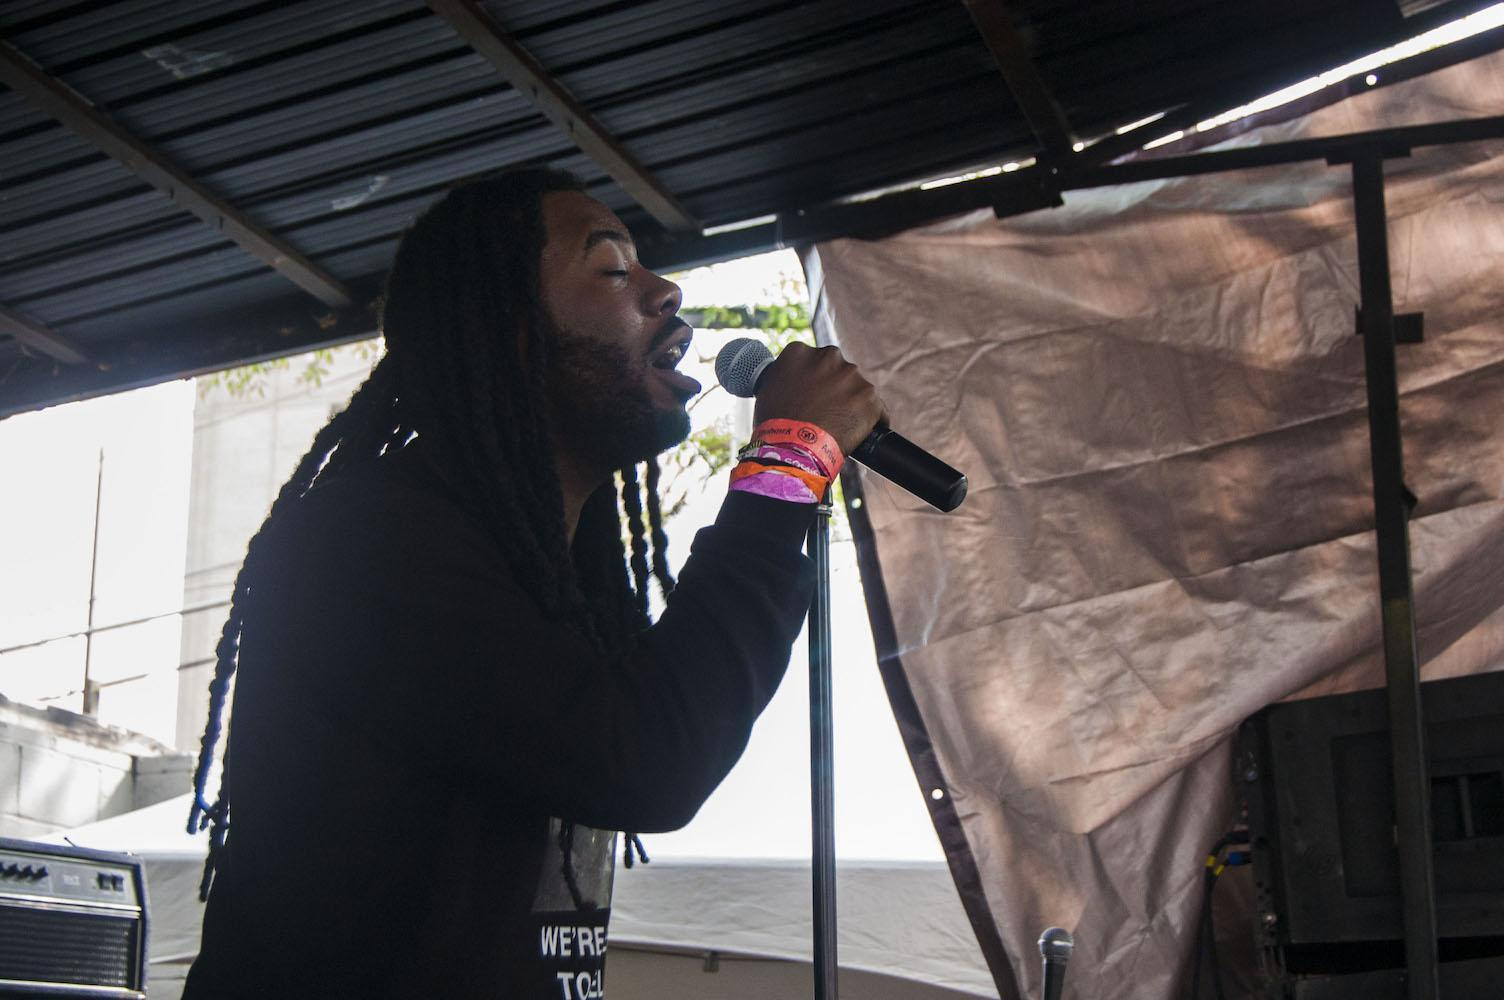 D.R.A.M. performed at this year's South by Southwest music festival in Austin, Texas.